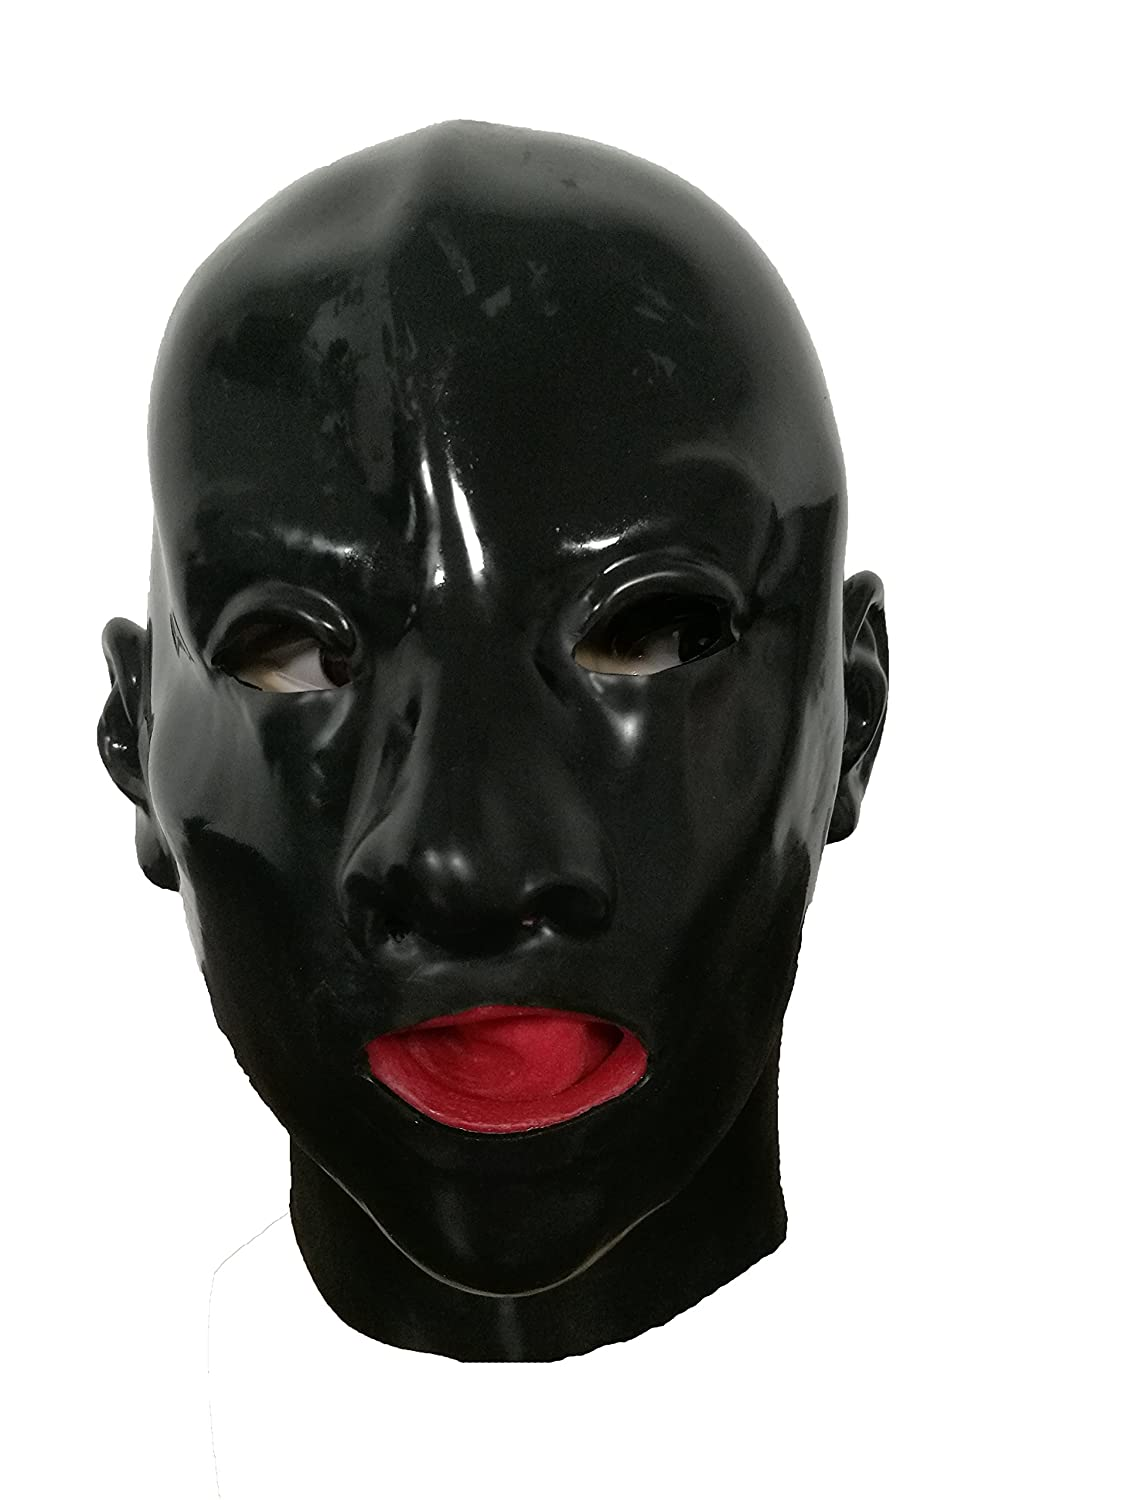 LMJMASK Latex Female Realistic Mask with Nose Tube and Mouth Hole